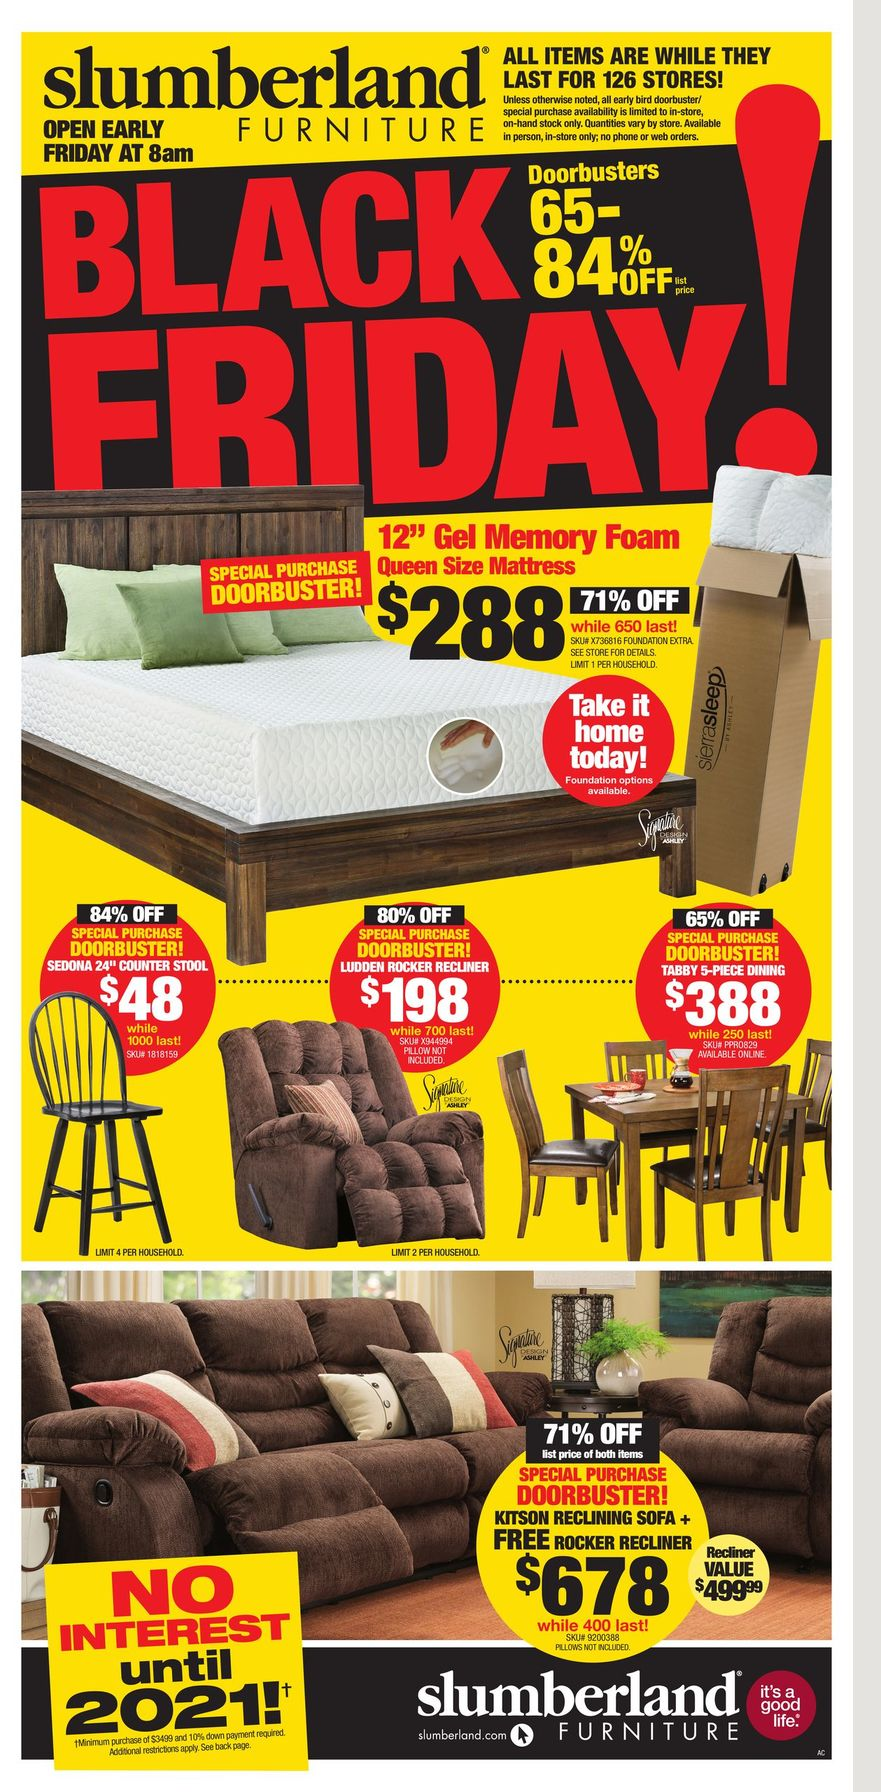 slumberlandfurniture-blackfriday2016 & Slumberland Furniture Black Friday Ad 2016 islam-shia.org